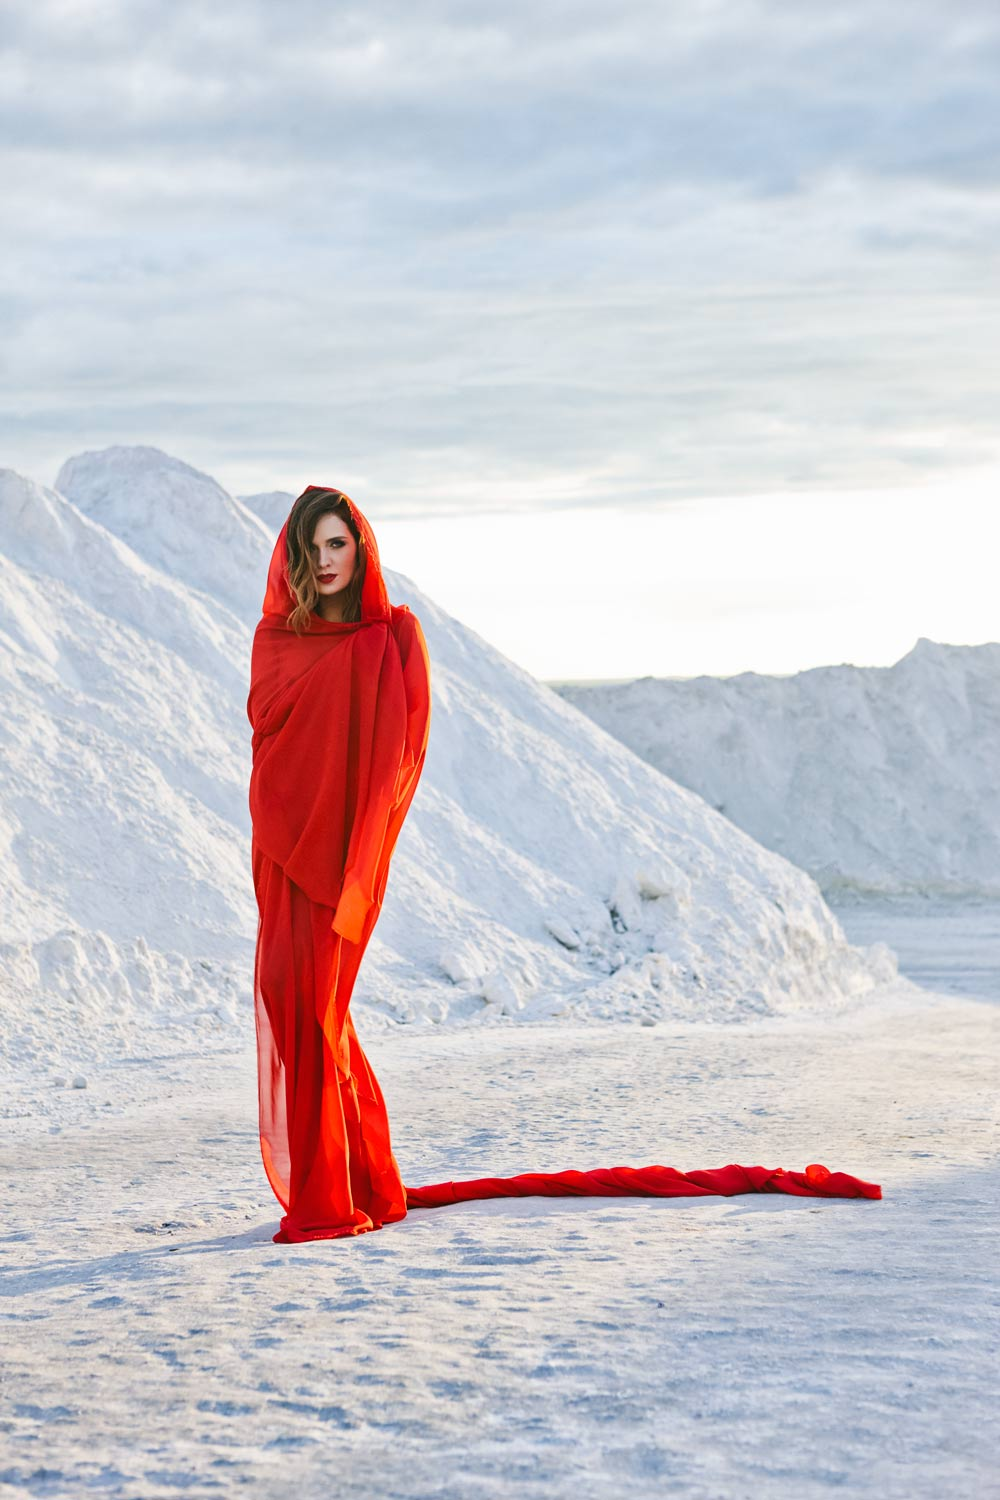 <p>Asta Valentaitė<br /> Fashion stylist, model, model scout<br /> Lithuania<br /> 2014</p>